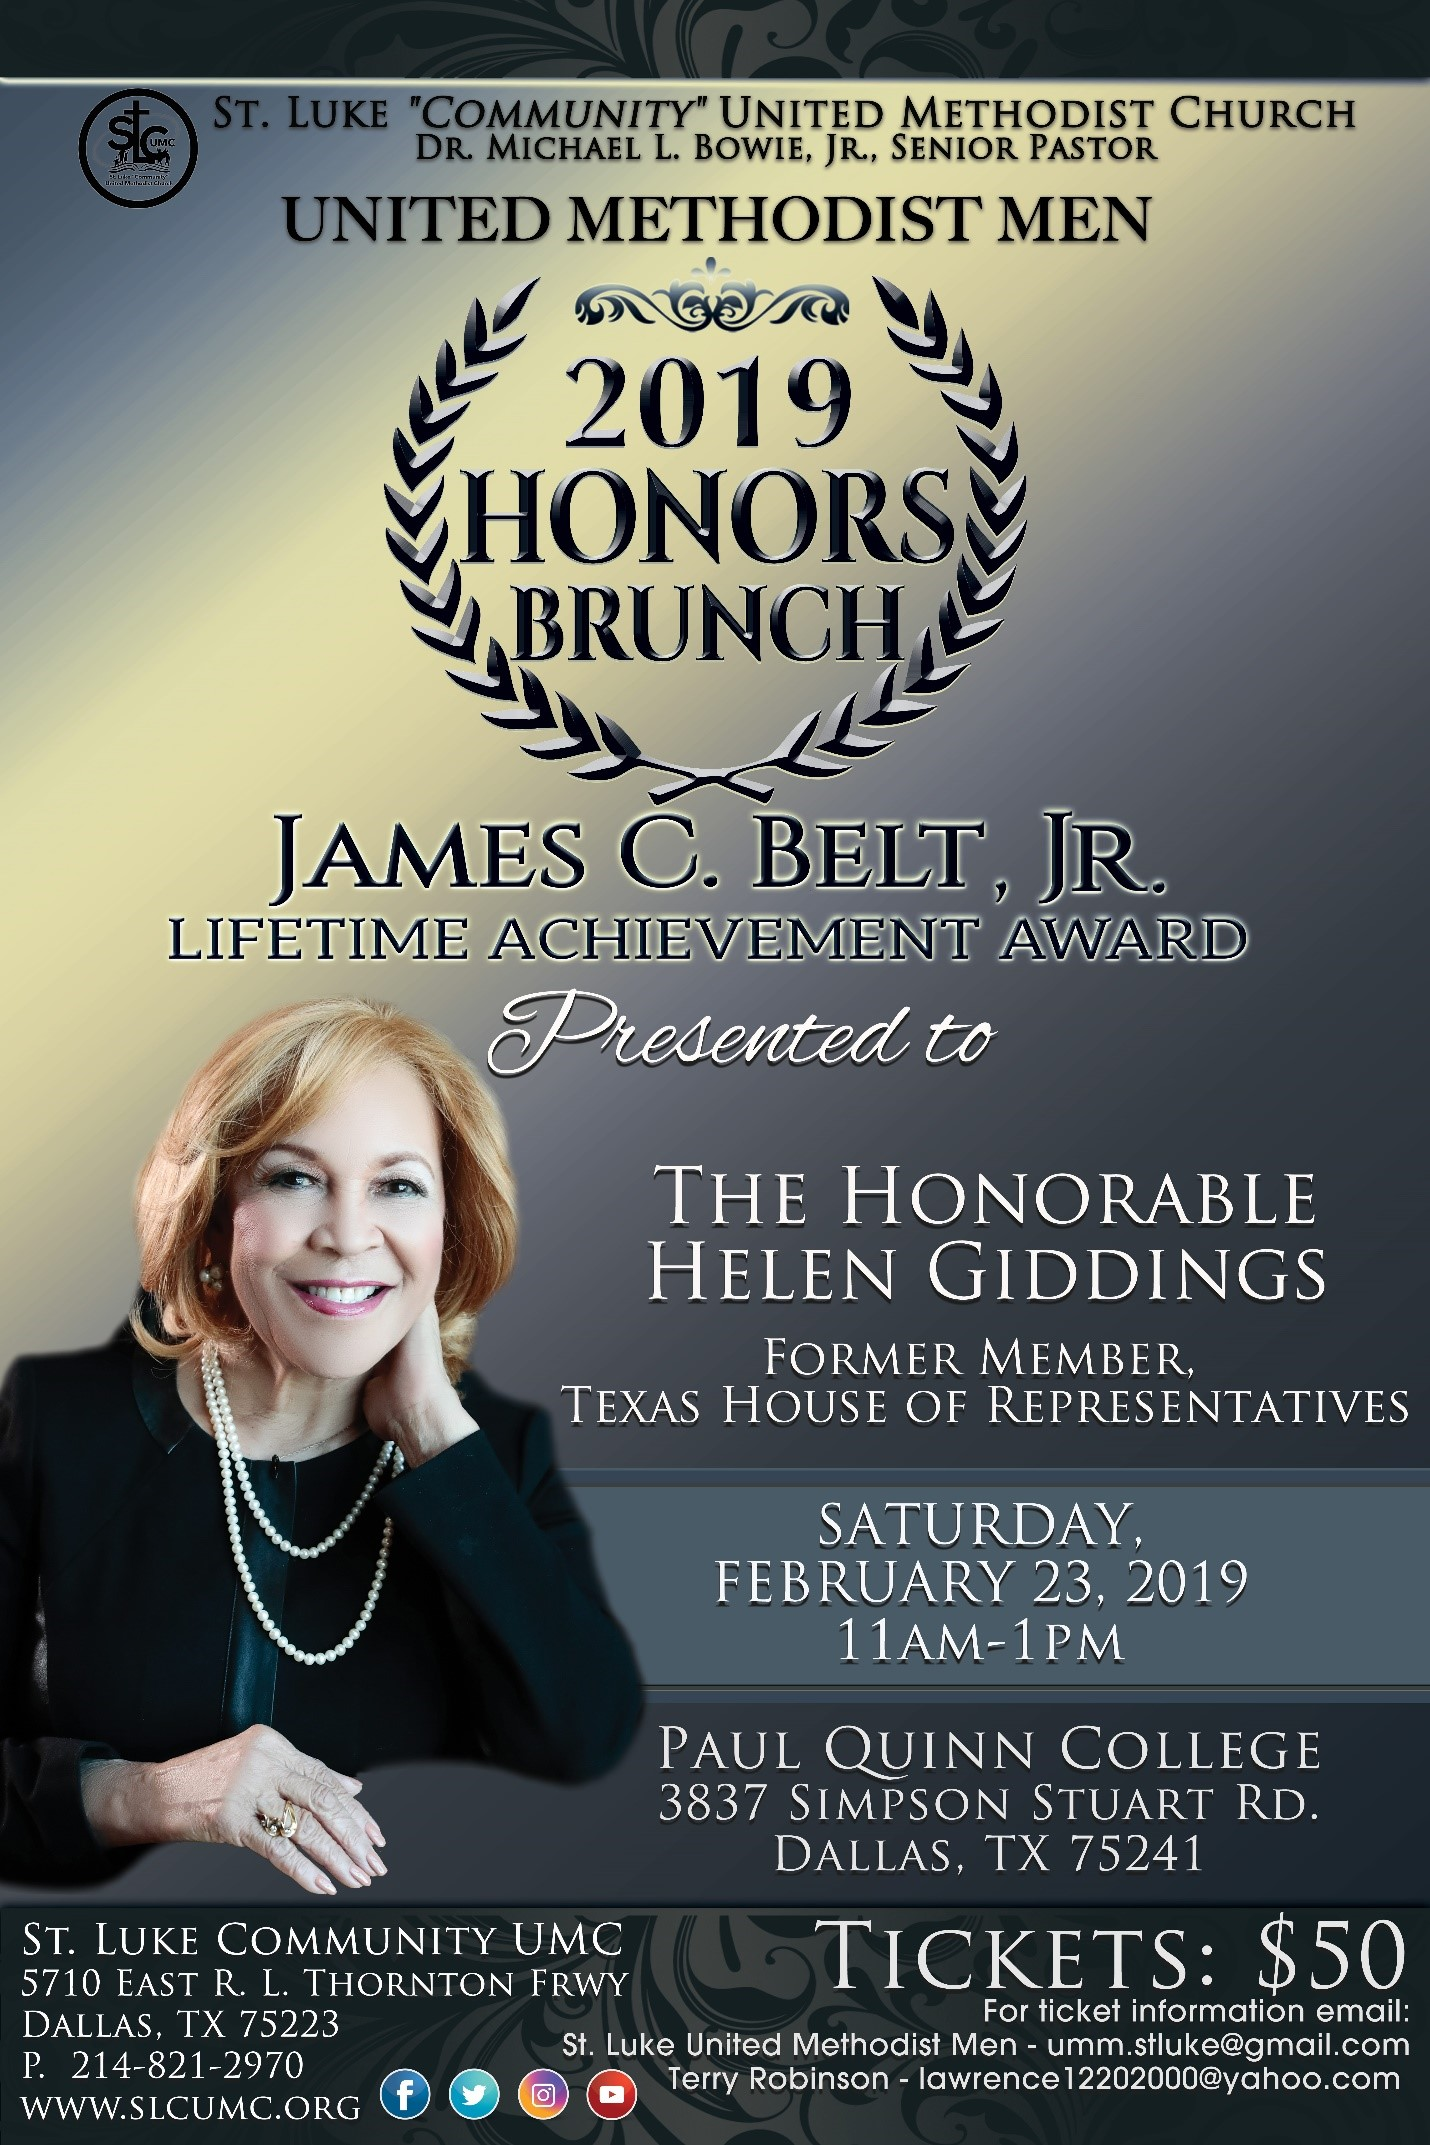 2019 HONORS BRUNCH: FEBRUARY 23, 2019